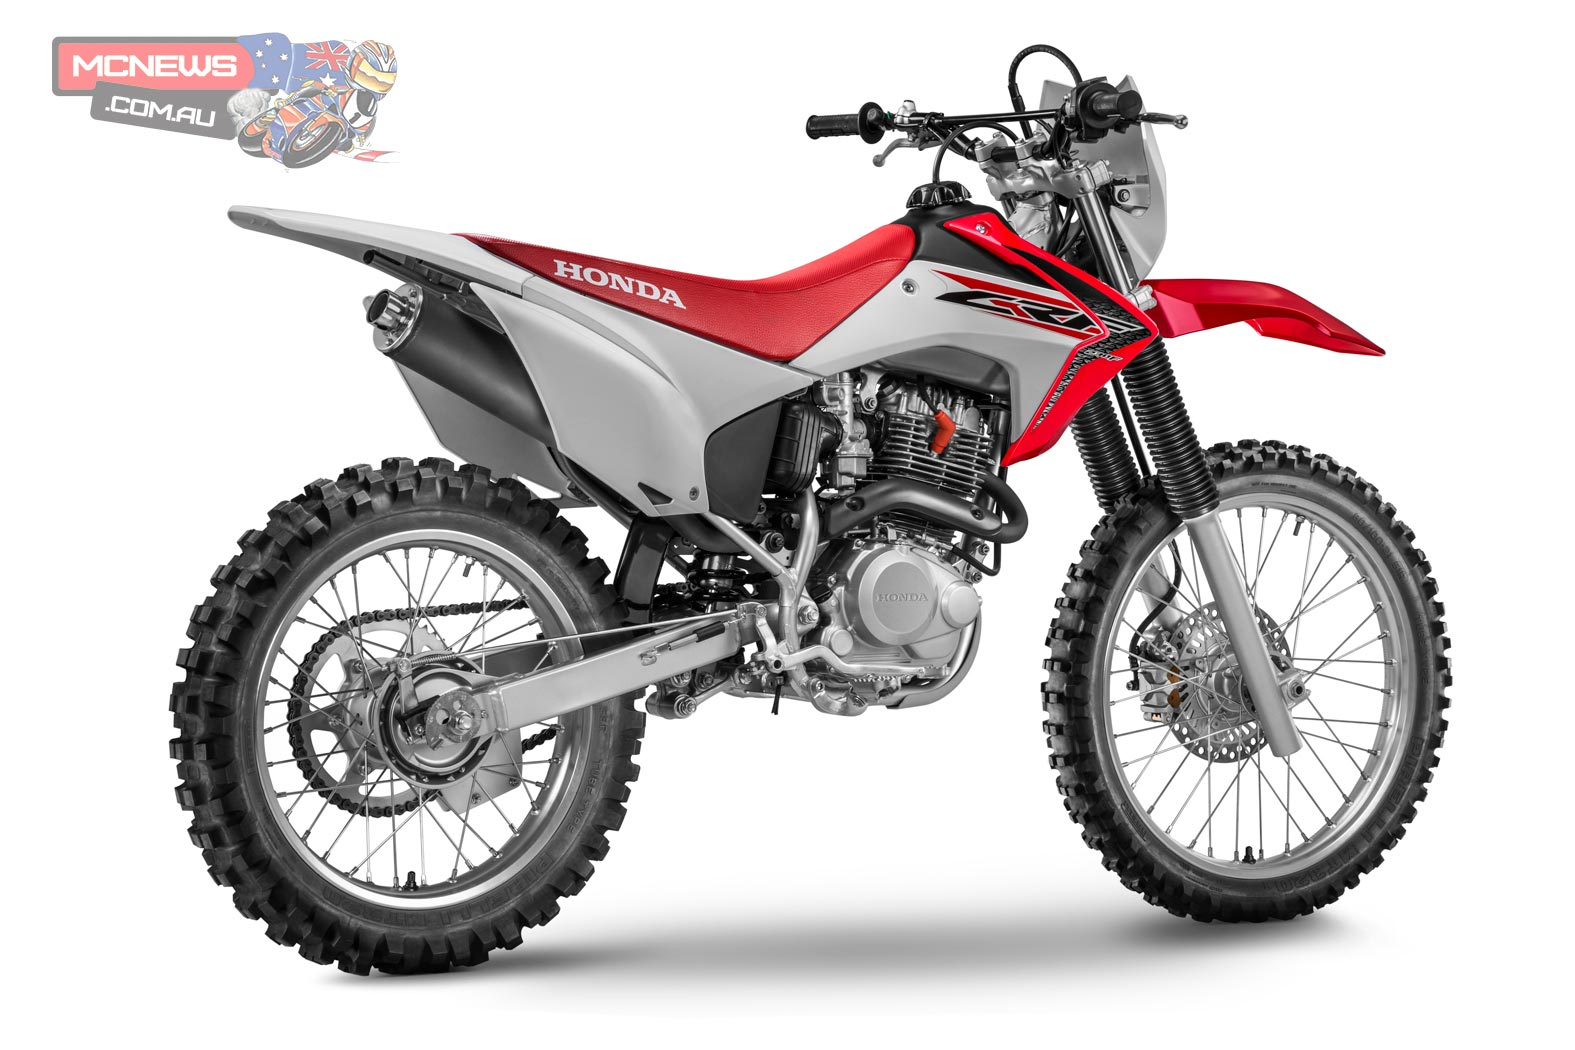 Honda crf230f photo - 2